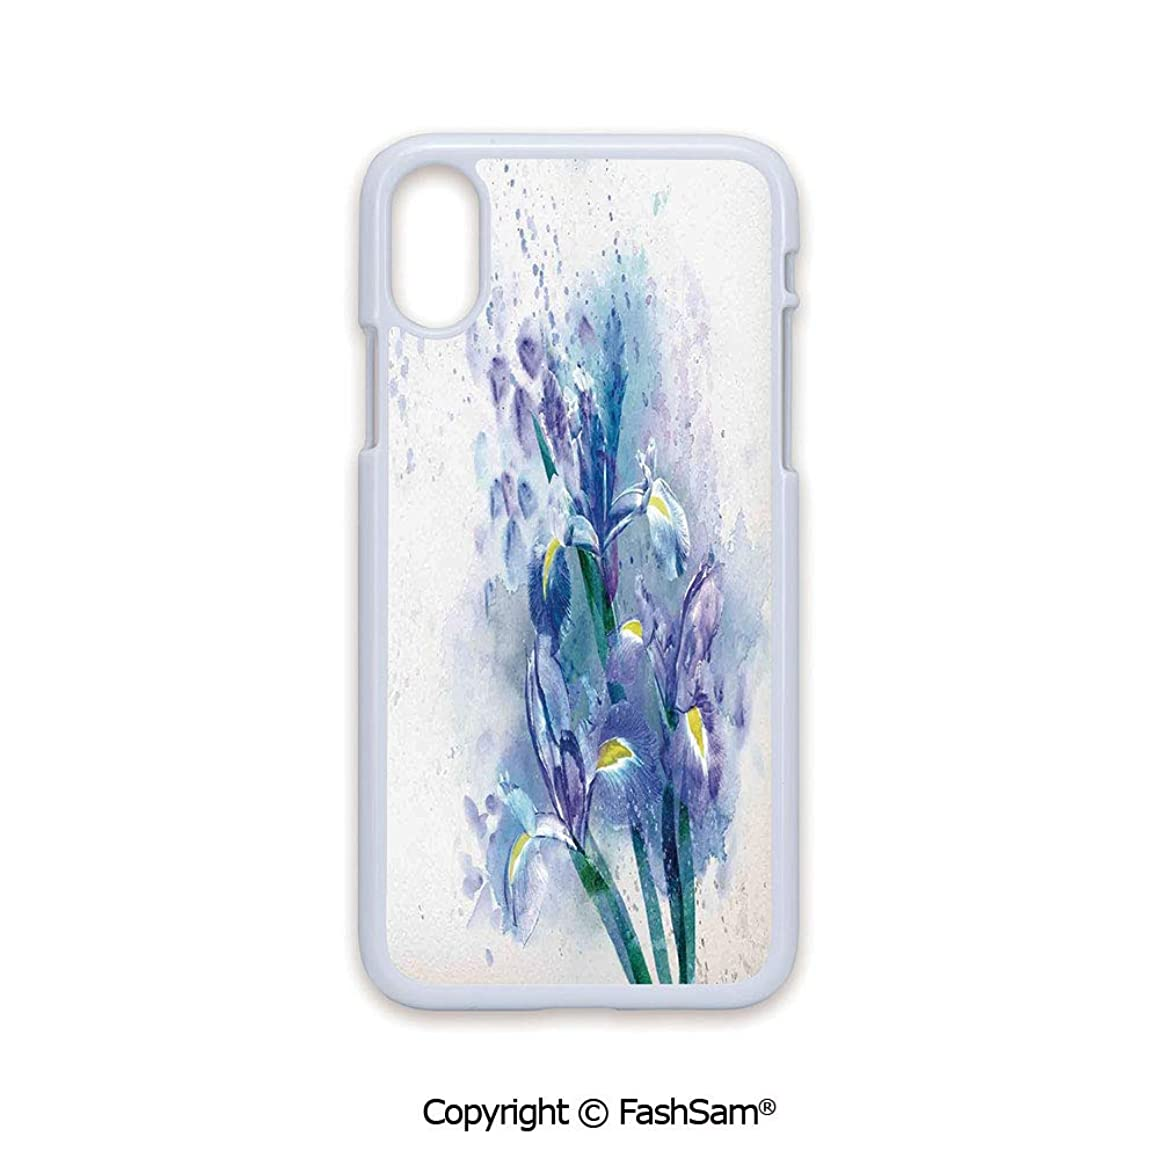 Plastic Rigid Mobile Phone case Compatible with iPhone X Black Edge Floral Background with Pretty Irises in Fresh Colors Nature Earth Spirit 2D Print Hard Plastic Phone Case